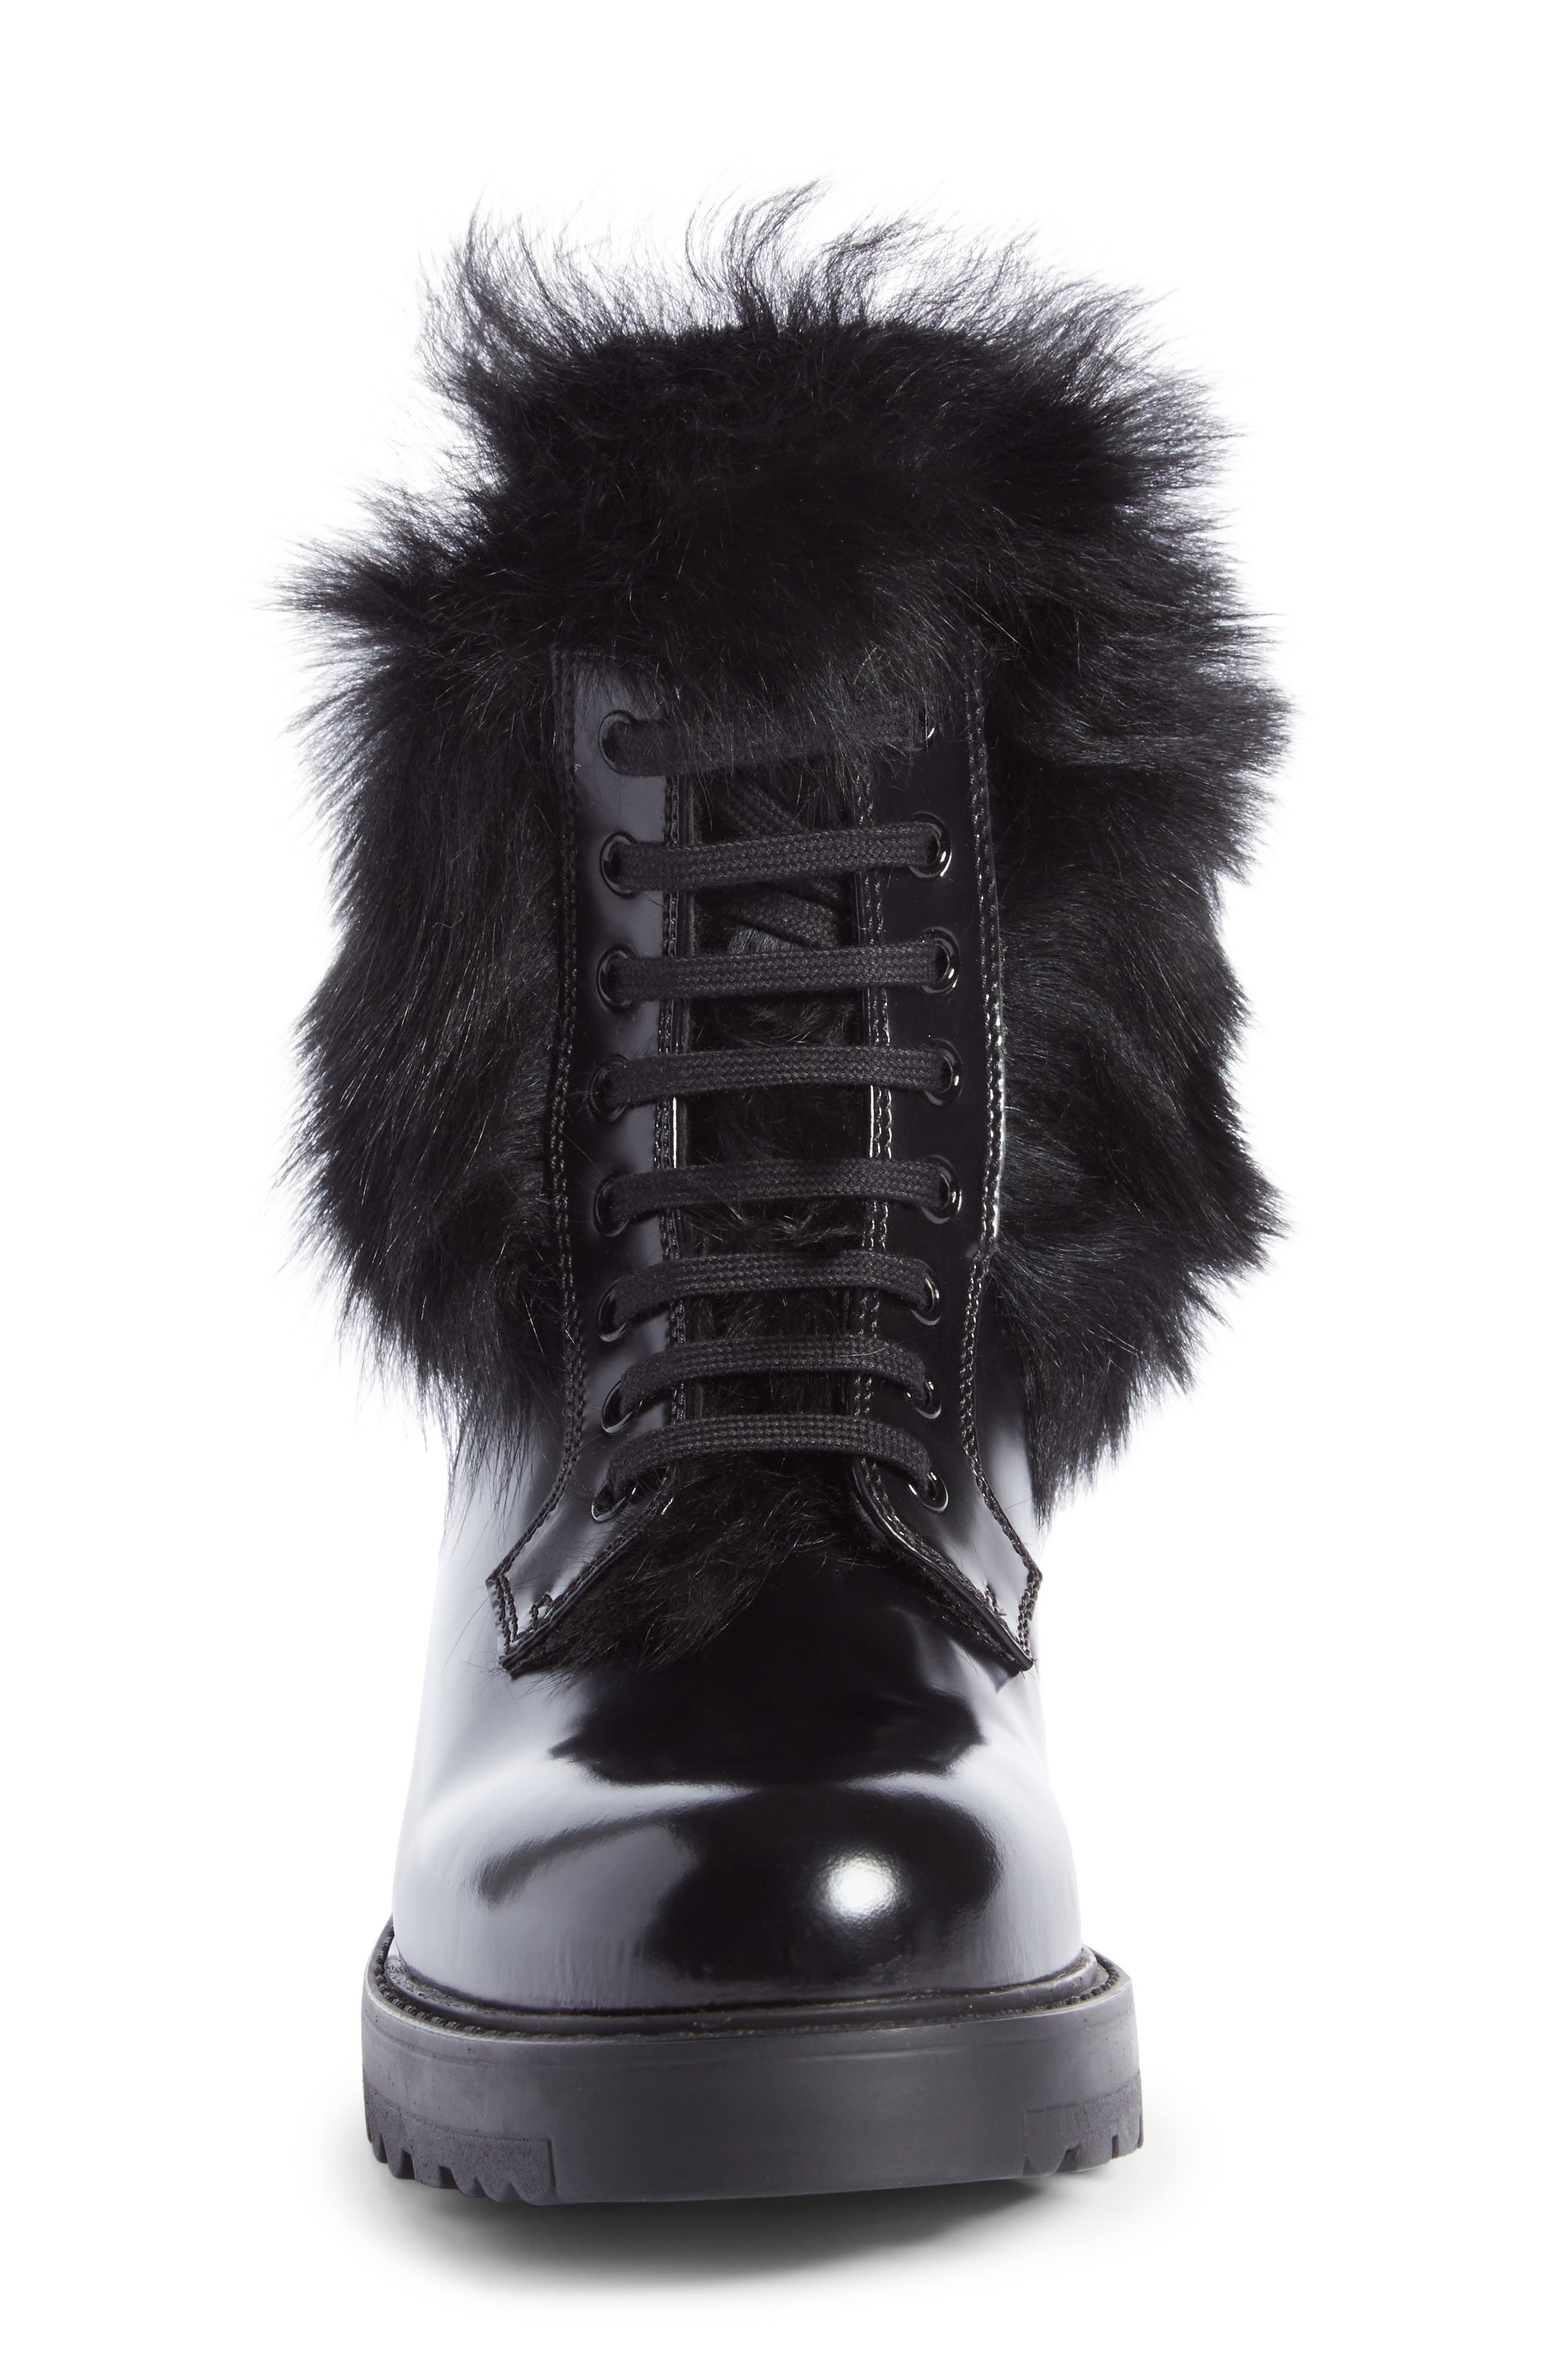 Genuine Shearling Lined Boot,                             Alternate thumbnail 4, color,                             001